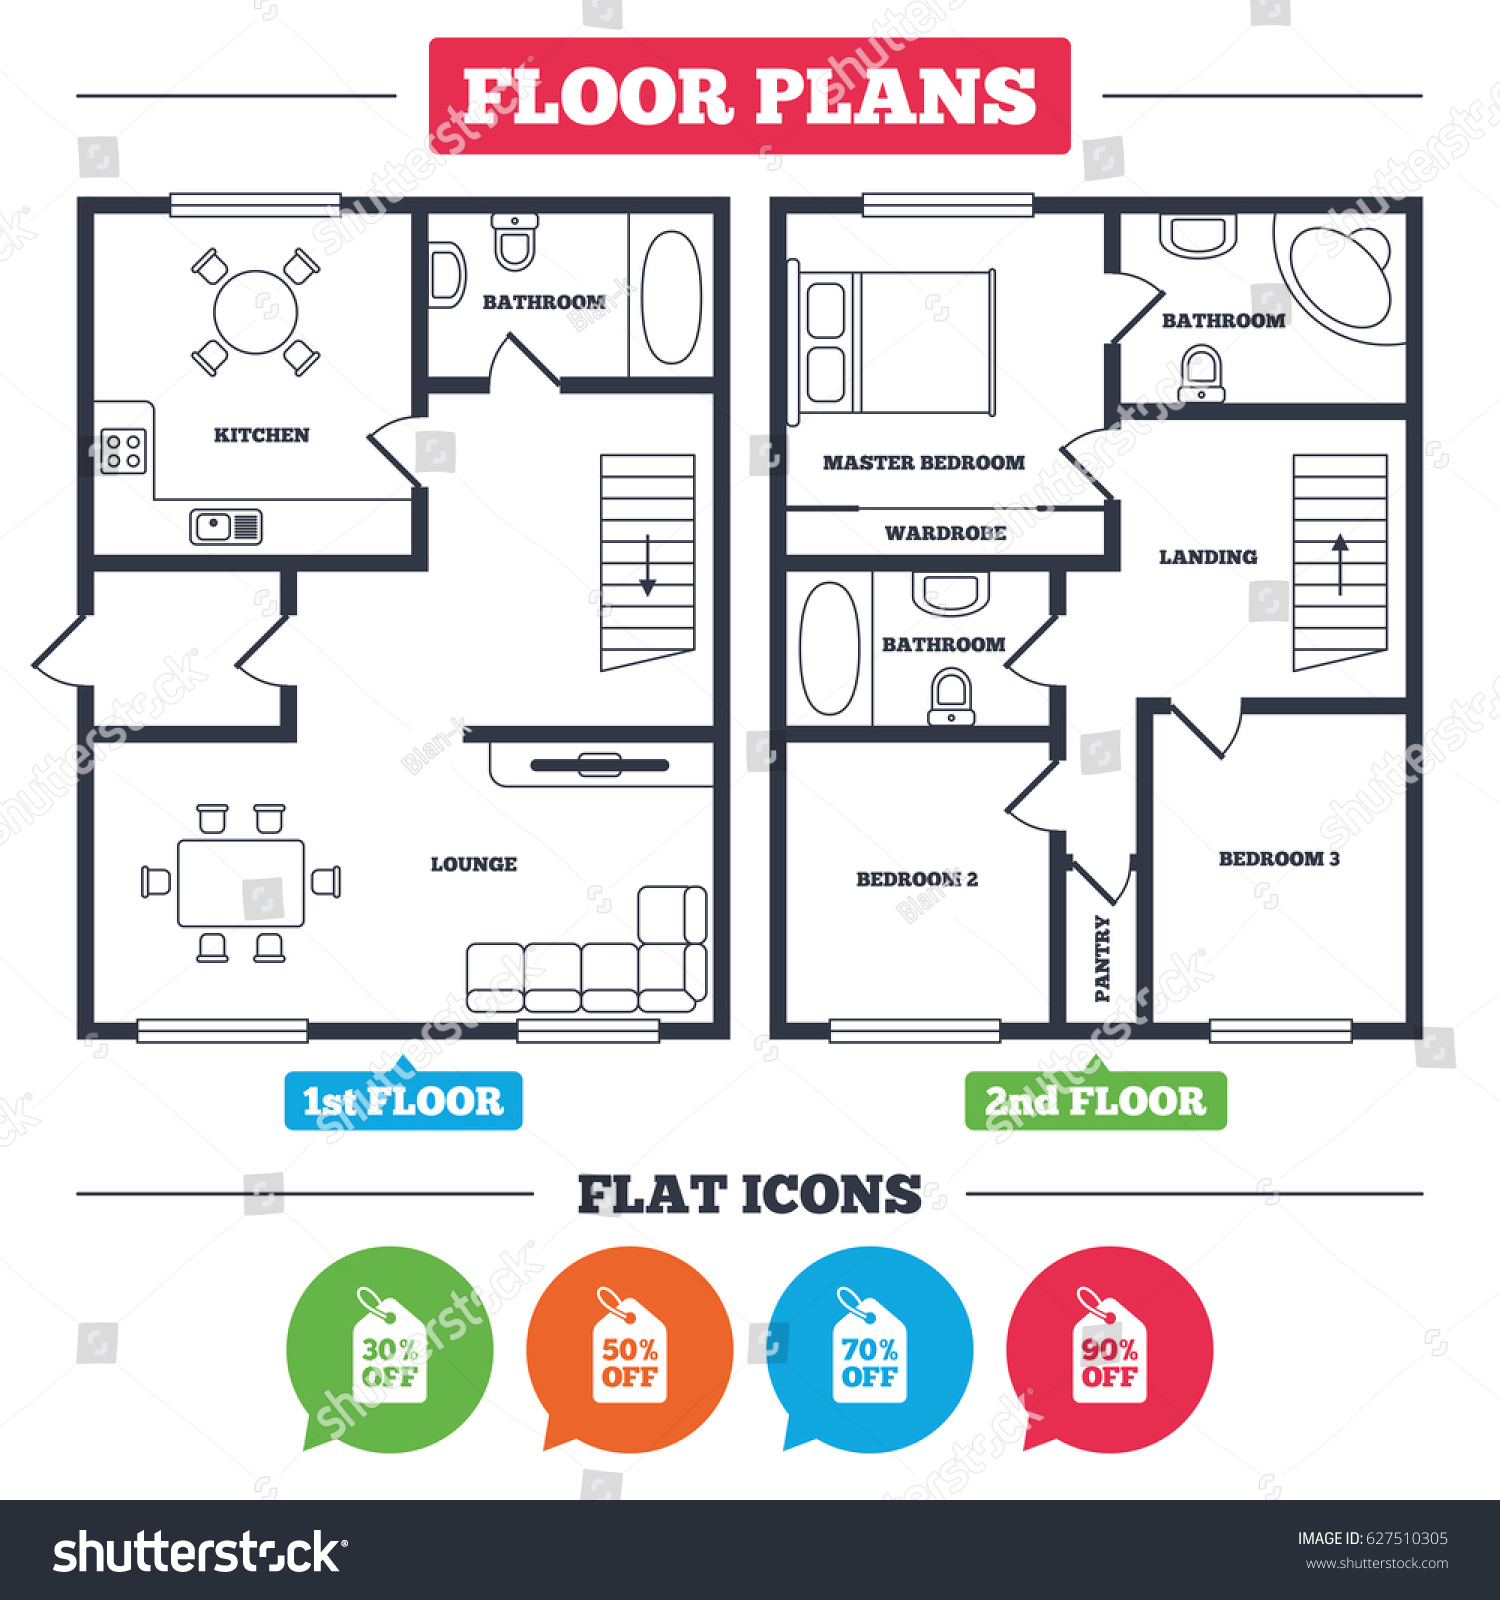 architecture plan furniture house floor plan stock vector architecture plan with furniture house floor plan sale price tag icons discount special